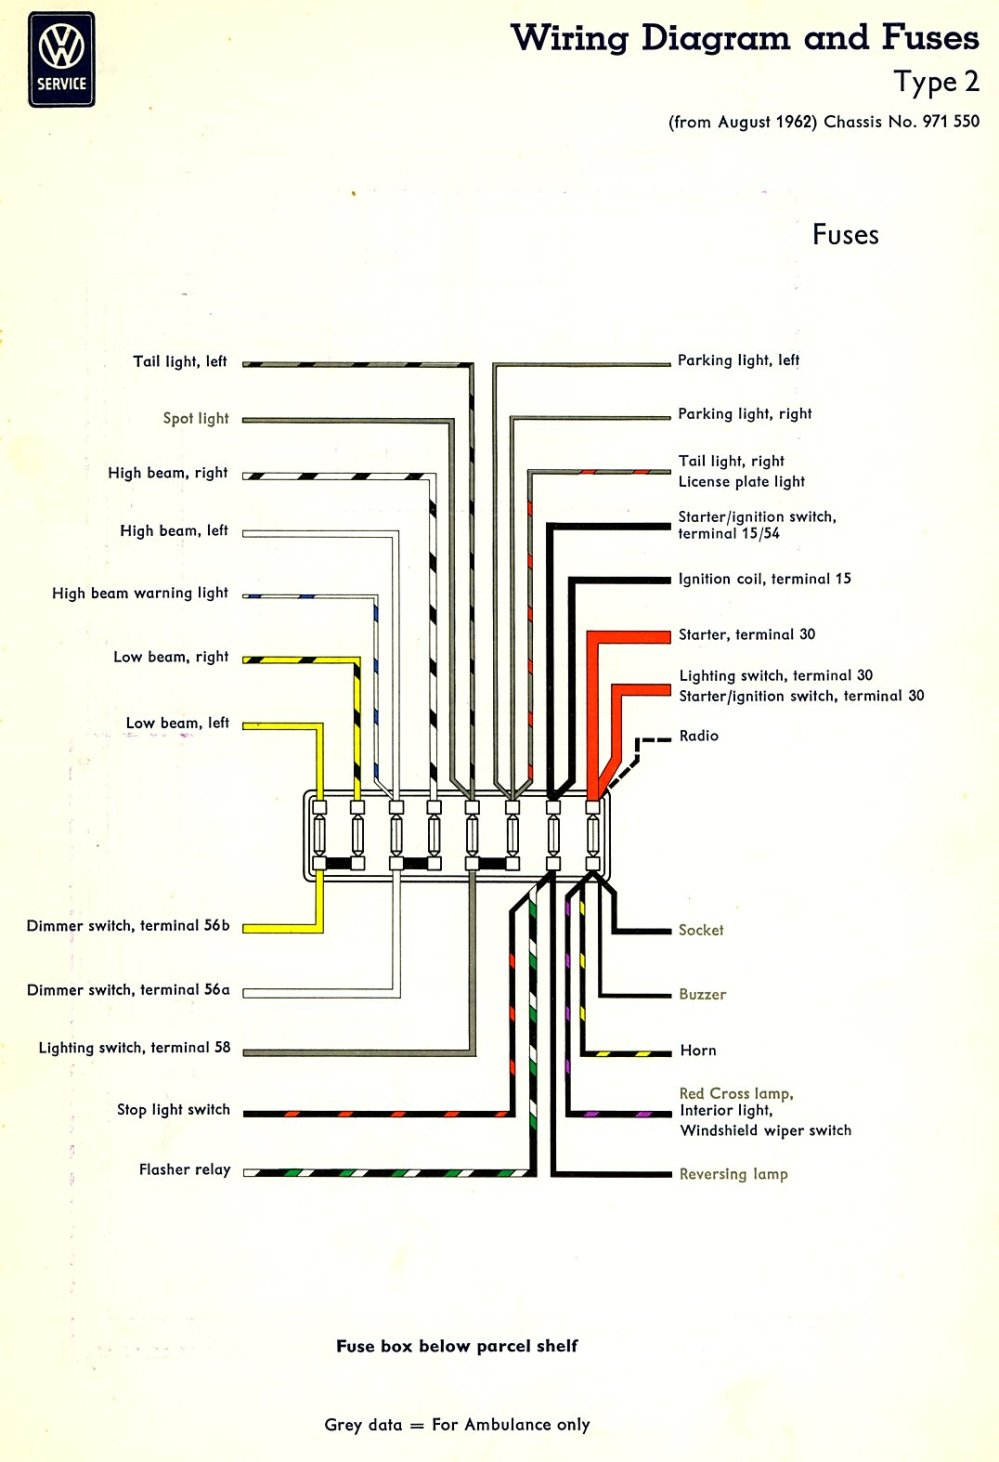 medium resolution of thesamba com type 2 wiring diagrams wiring diagram for 1963 vw